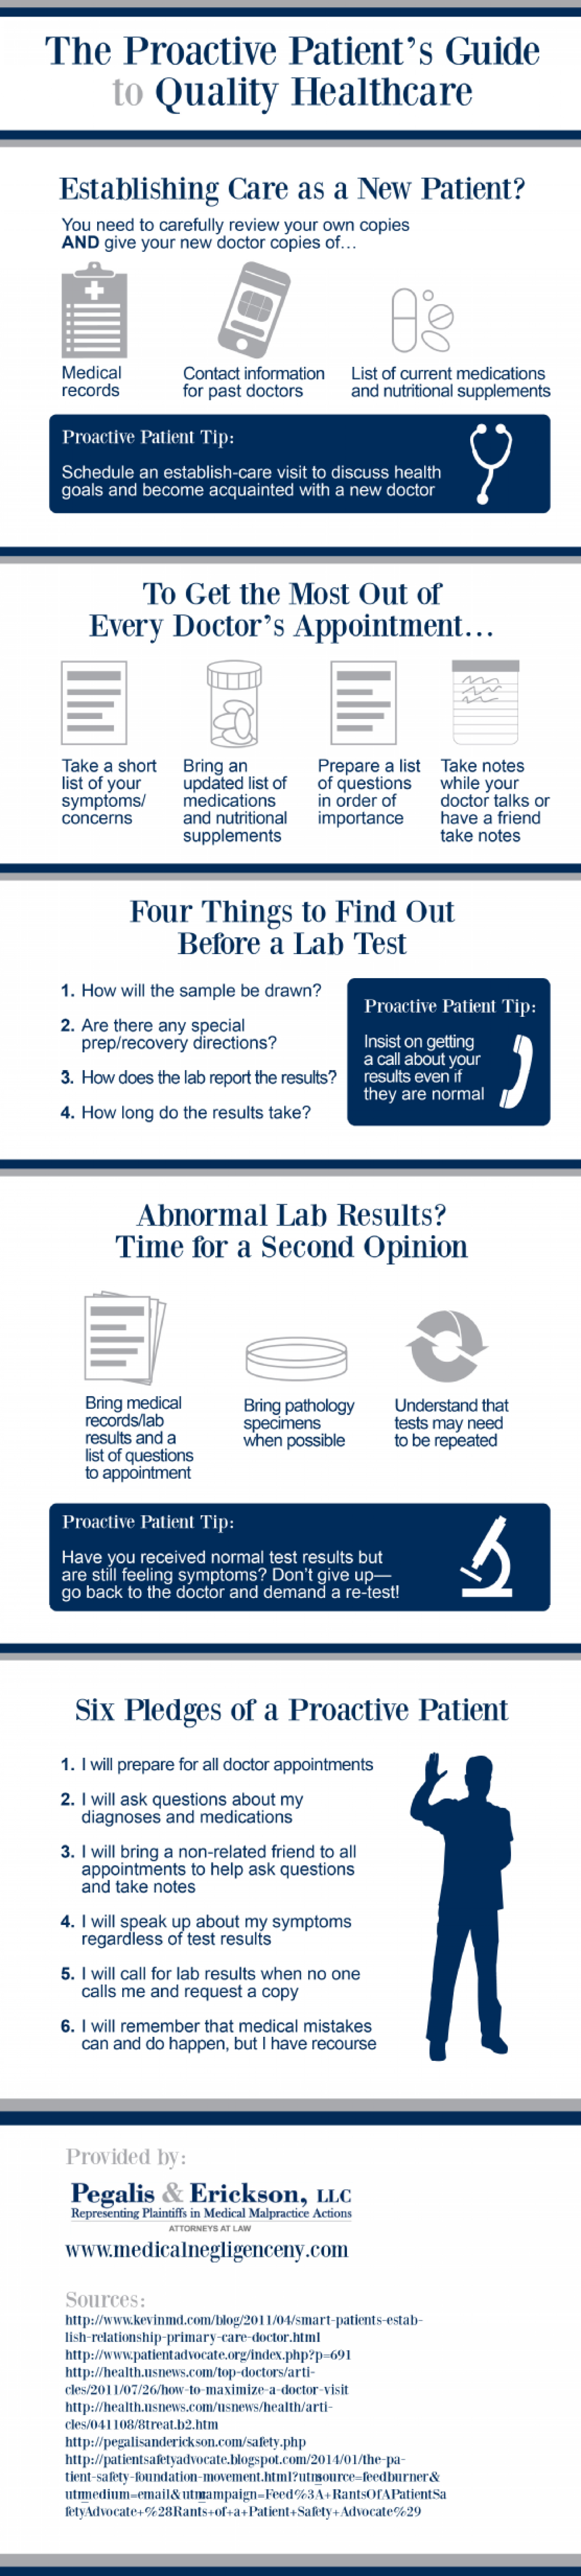 The Proactive Patient's Guide to Quality Healthcare Infographic